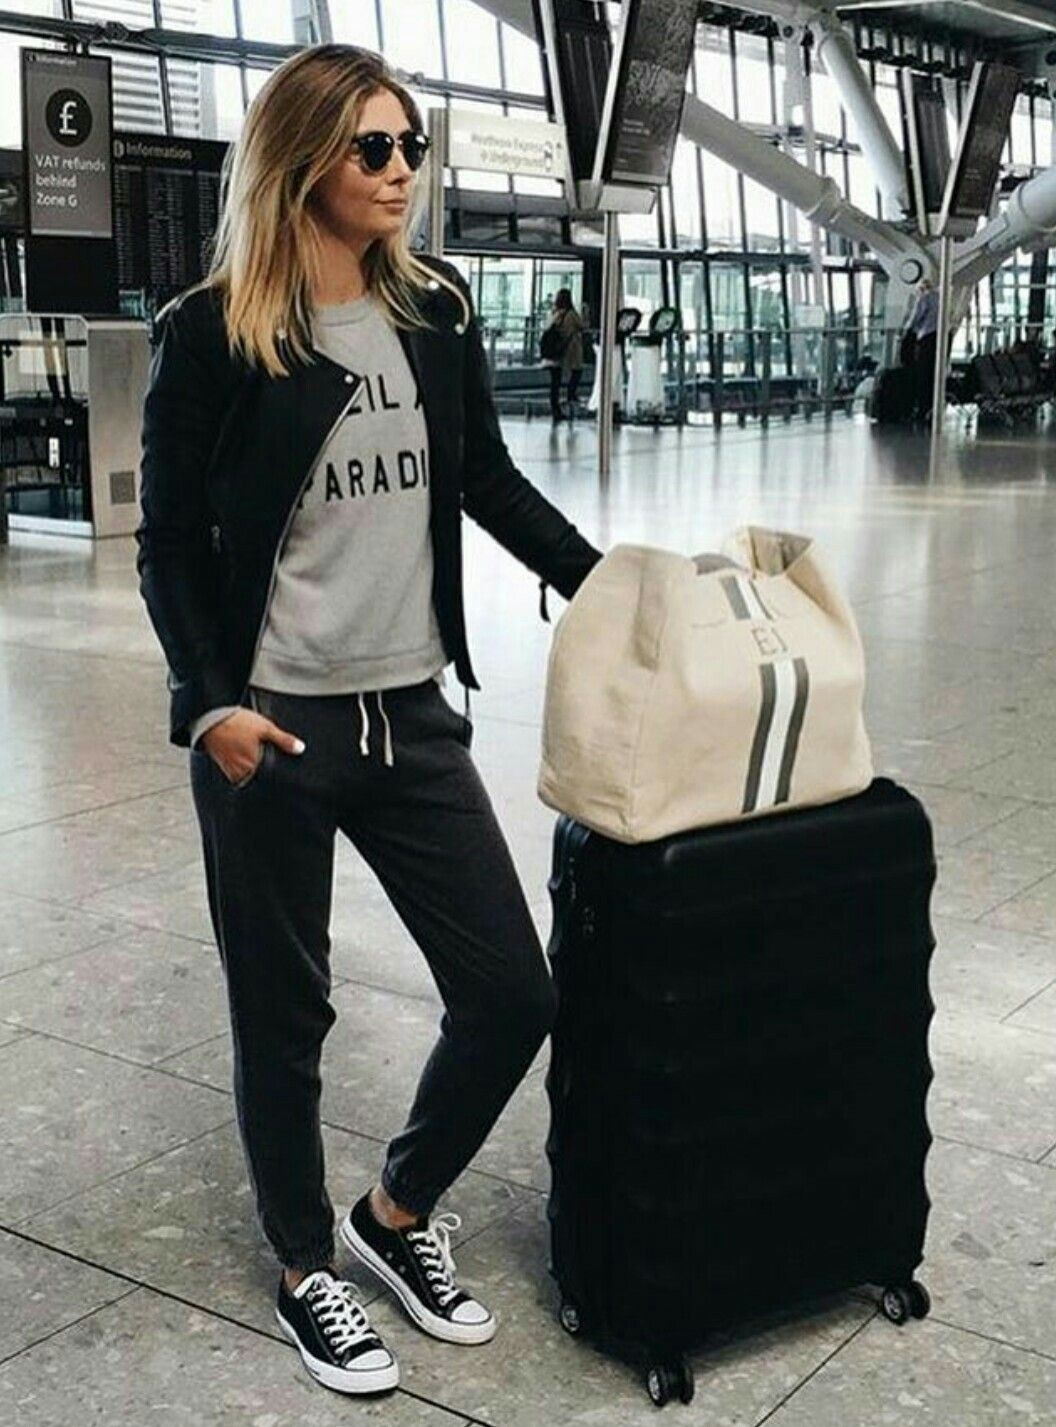 Summer comfortable airport outfits orlando international airport, street fashion